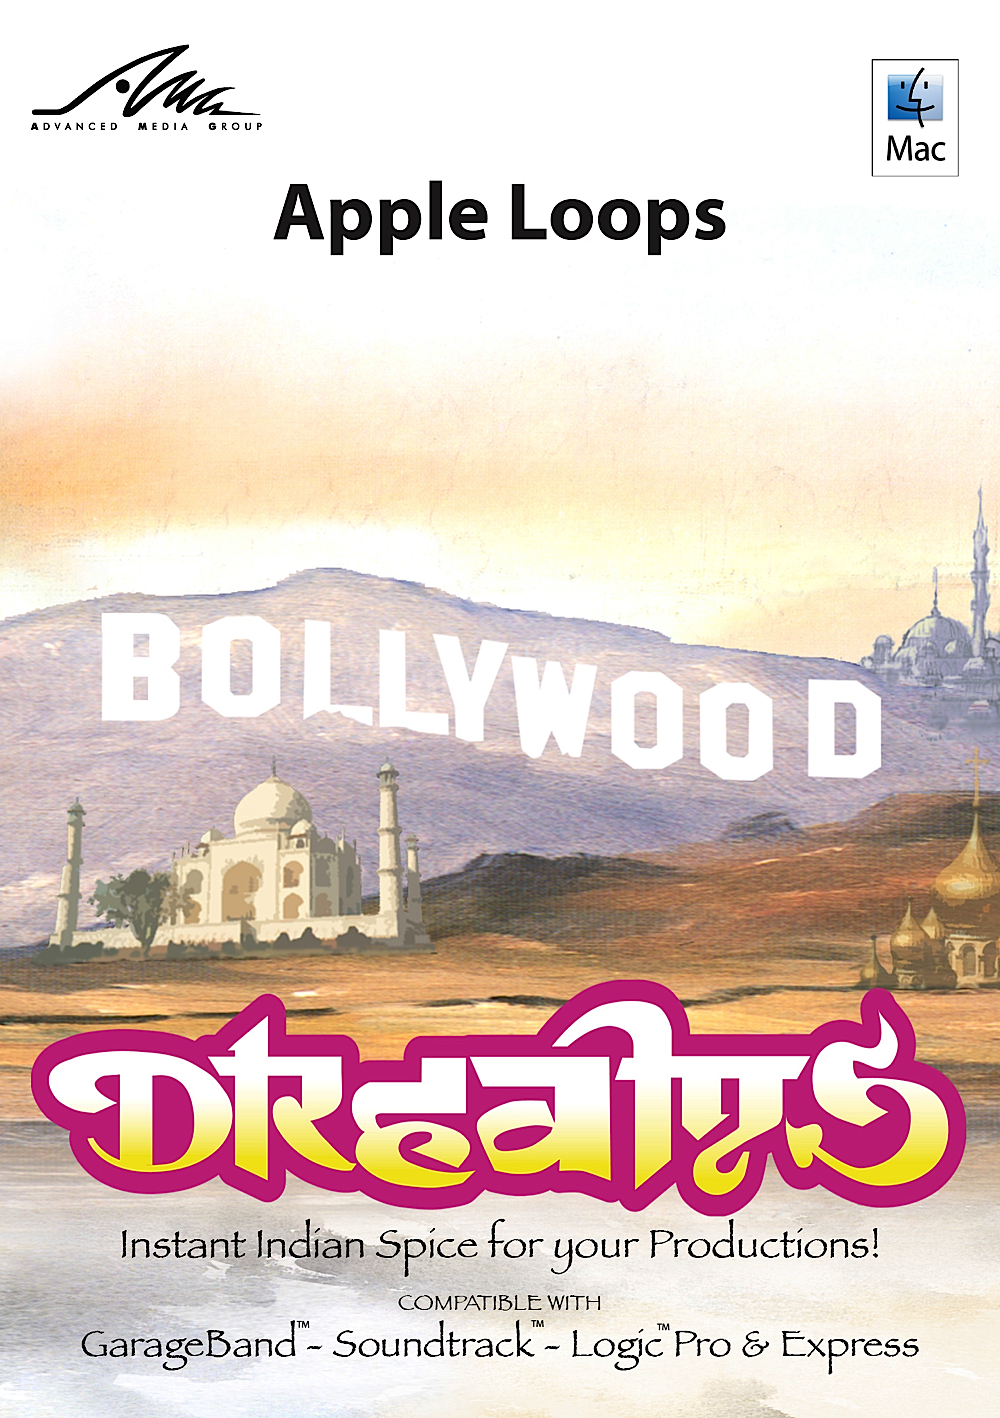 Bollywood Dreams - New Ethnic Fusion Apple Loops for GarageBand ()